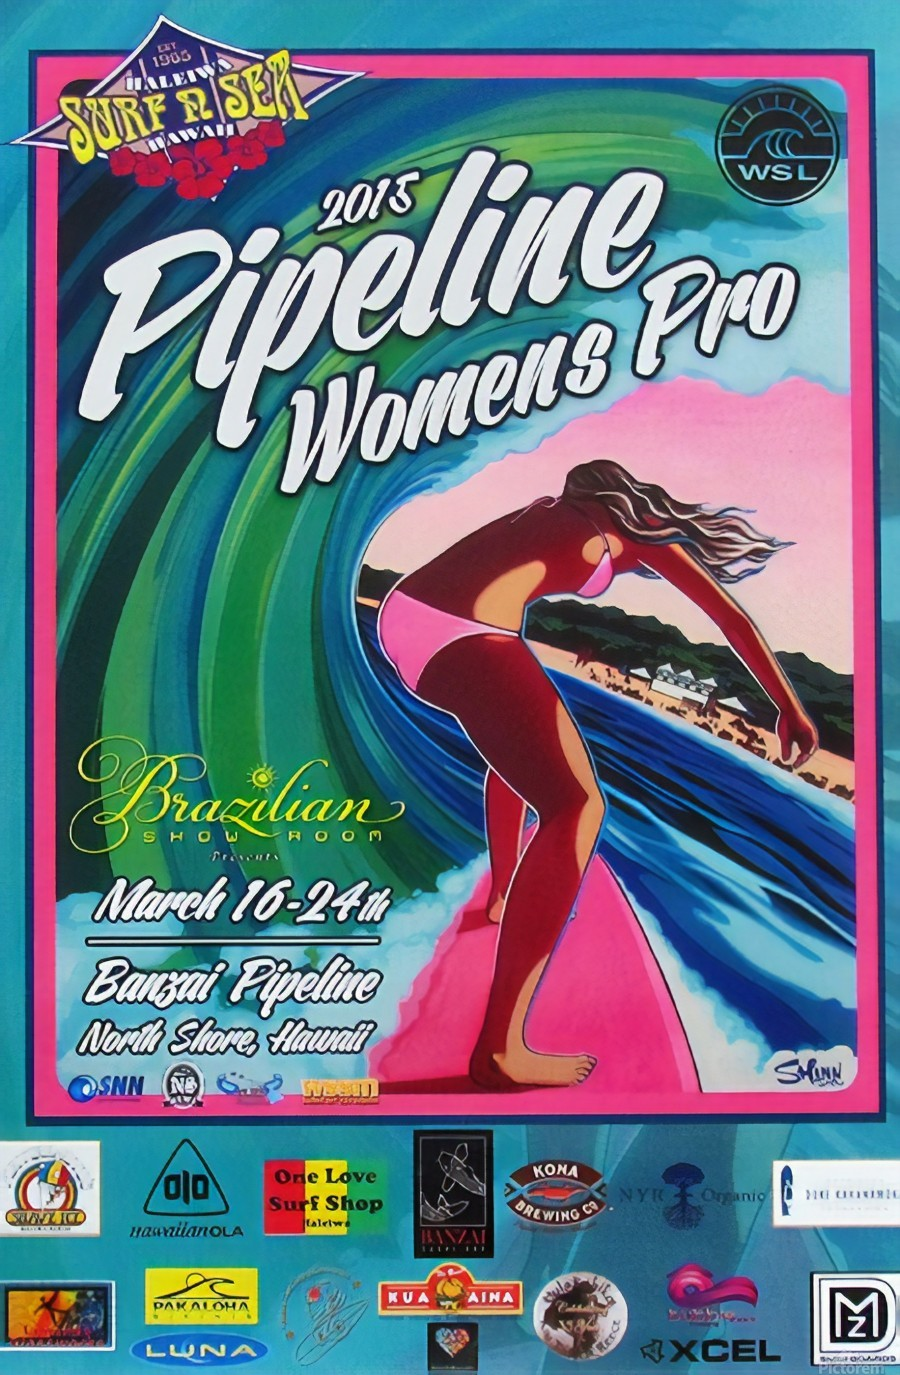 2015 PIPELINE WOMENS PRO Surfing Competition Print  Print